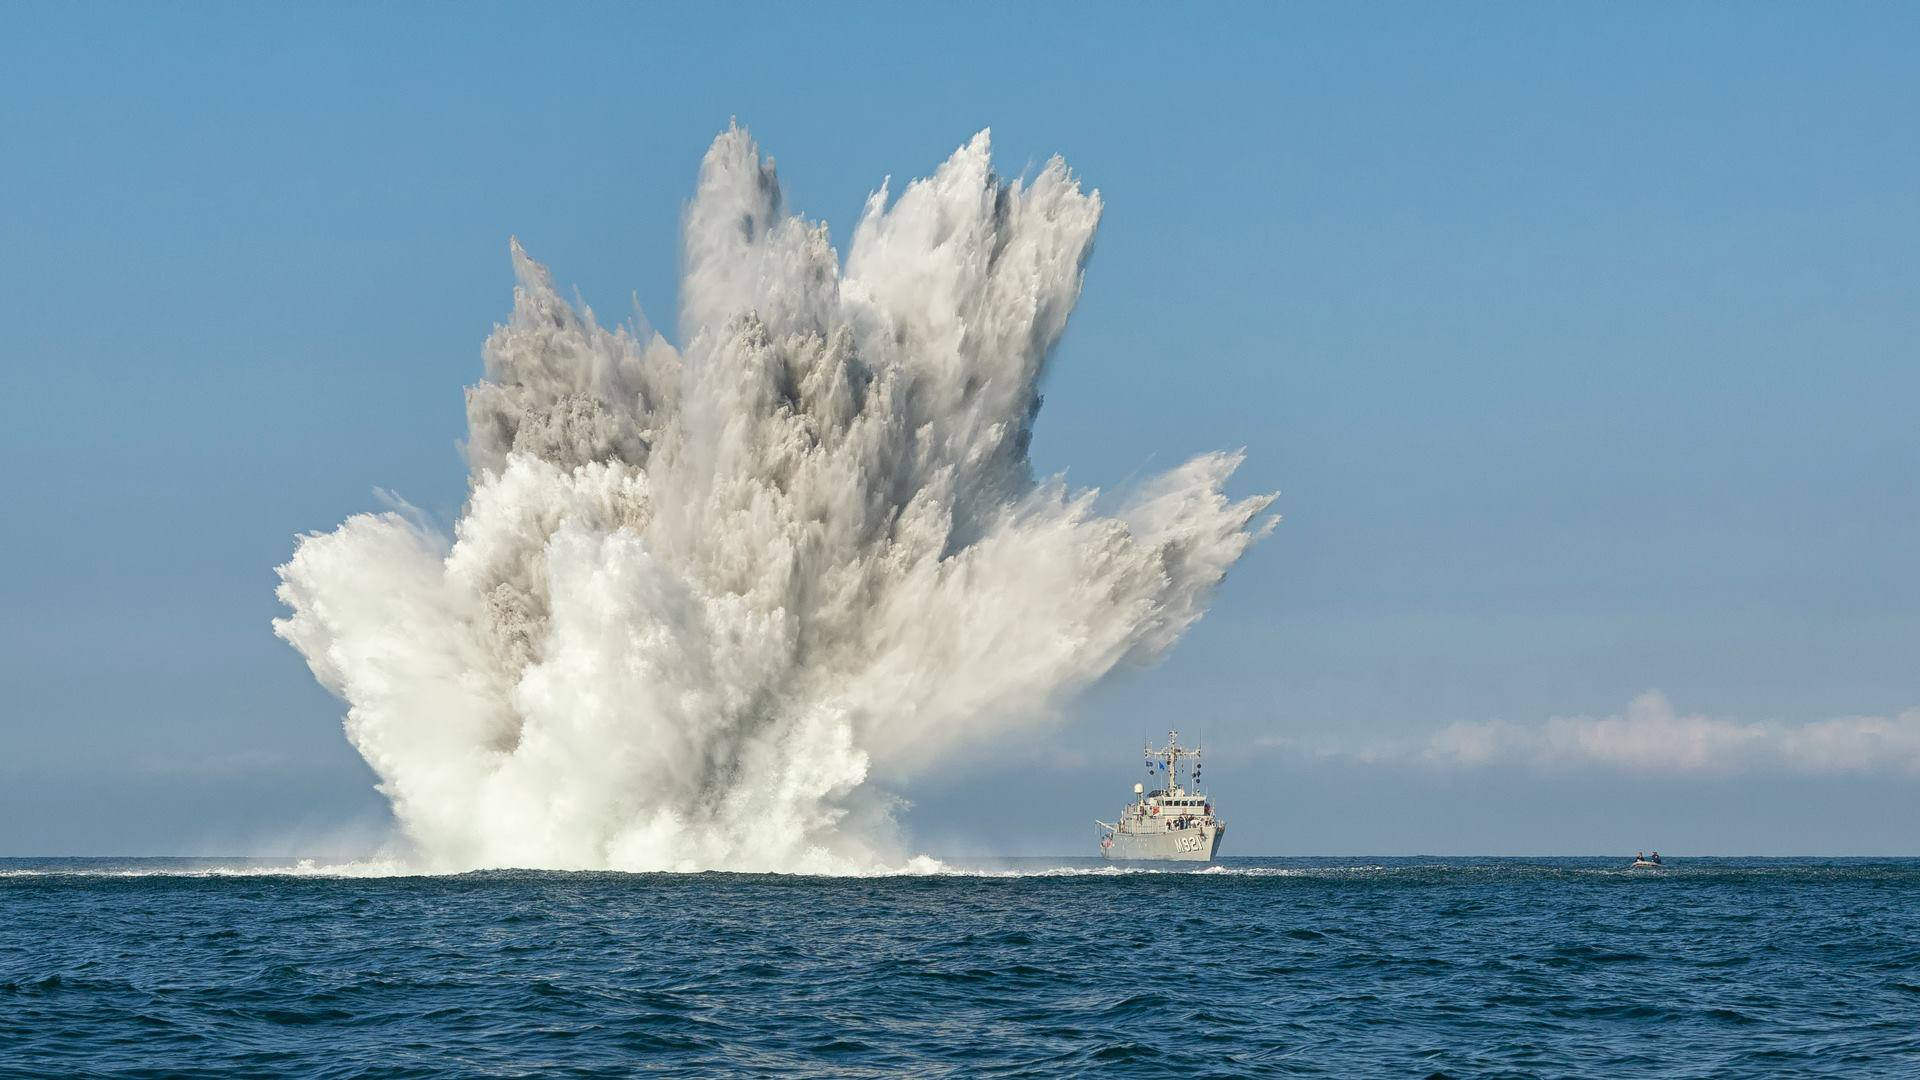 BNS-Lobelia-of-NATO-Standing-Mine-Countermeasures-Group-One-blowing-up-a-kg-German-mine-during-E-wallpaper-wp3403442